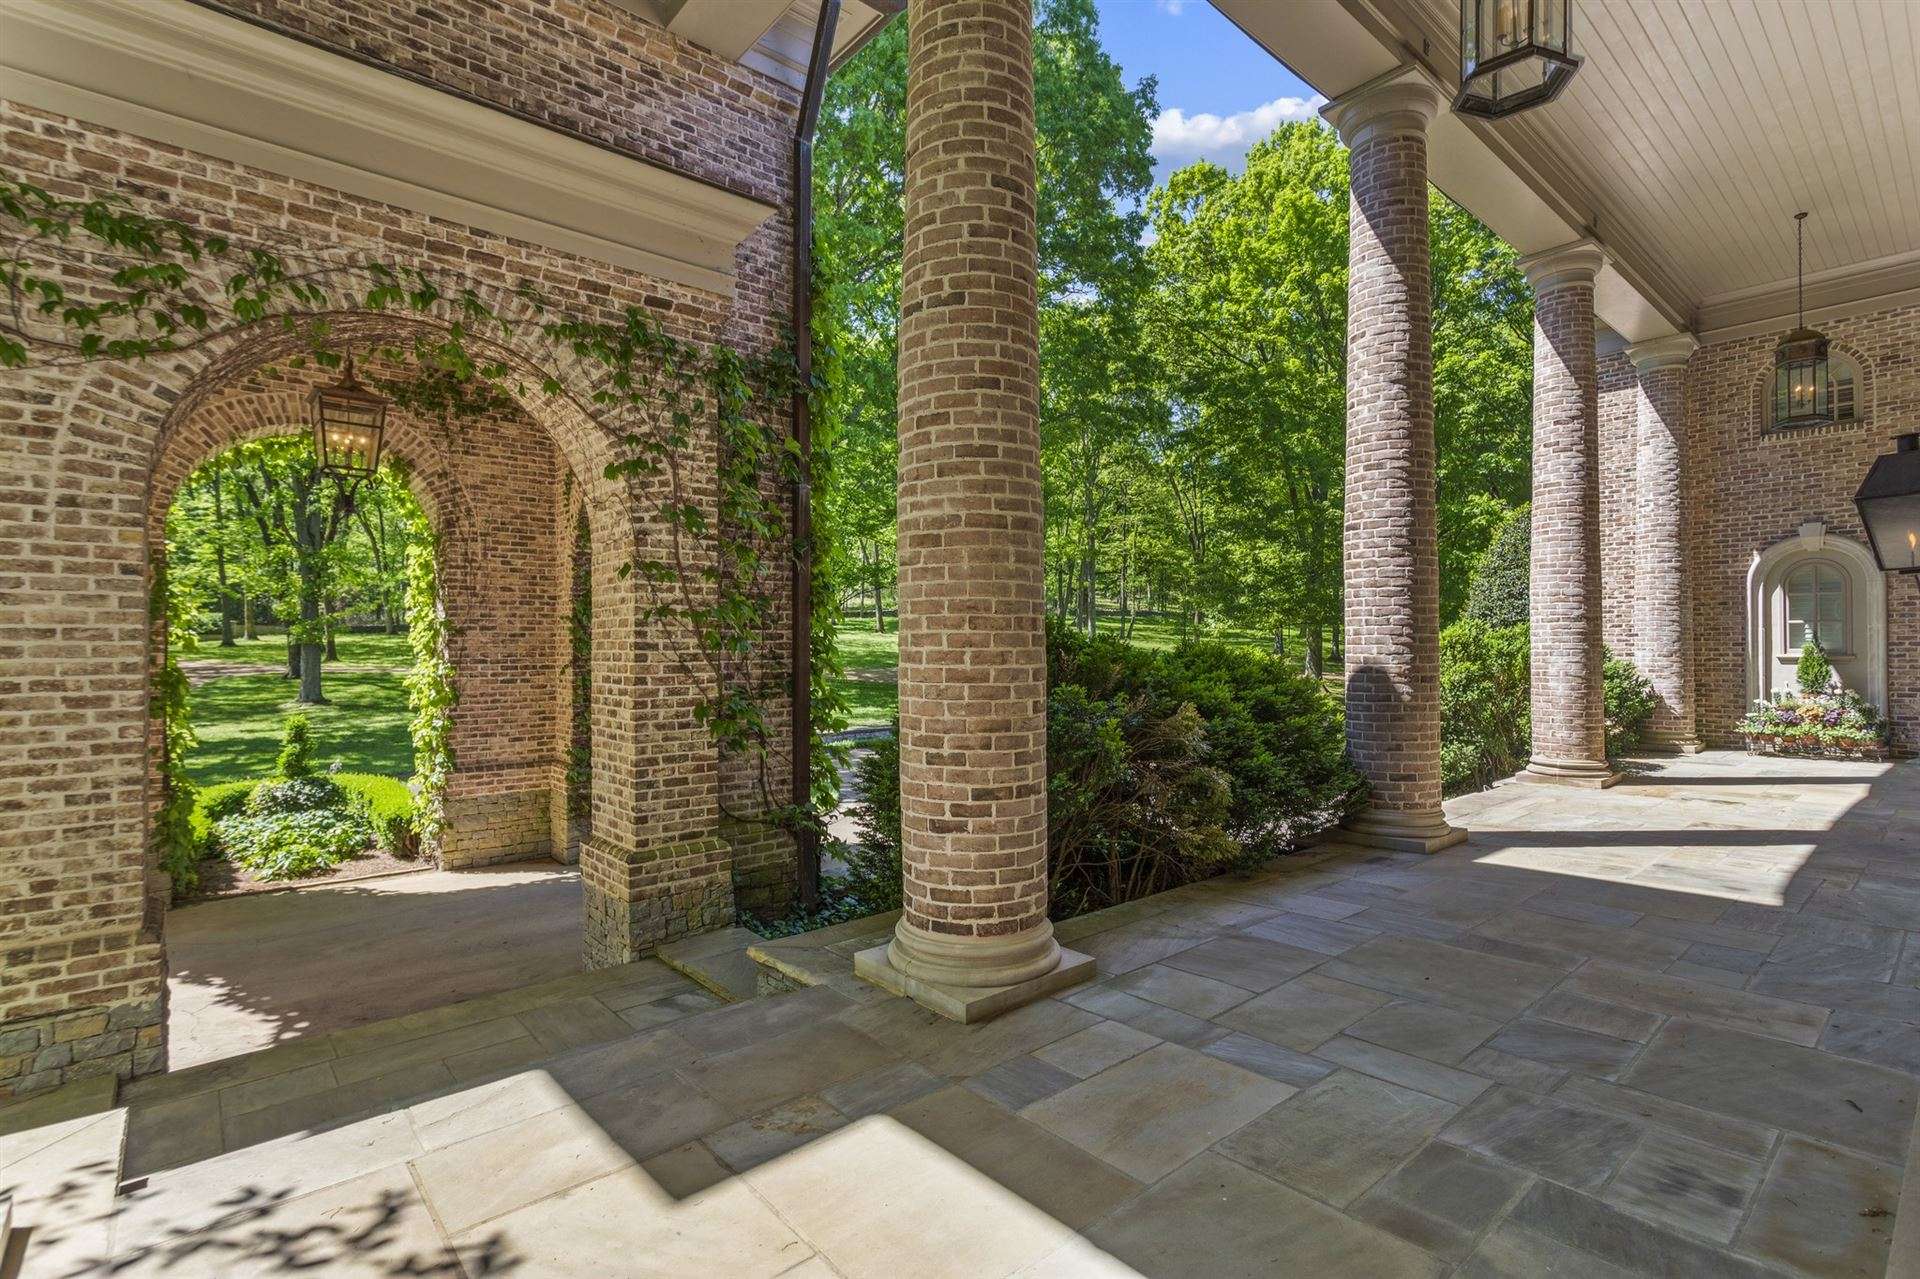 Photo of 1358 Page Rd, Nashville, TN 37205 (MLS # 2251105)